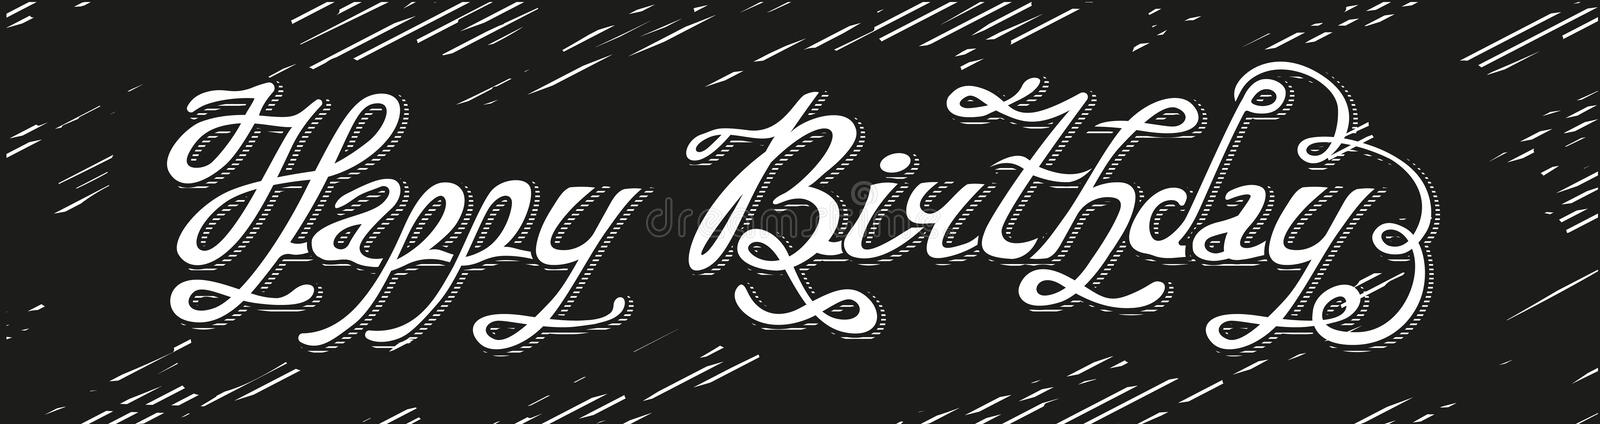 Isolated abstract white color happy birthday writing on black download isolated abstract white color happy birthday writing on black background handwritten calligraphic font m4hsunfo